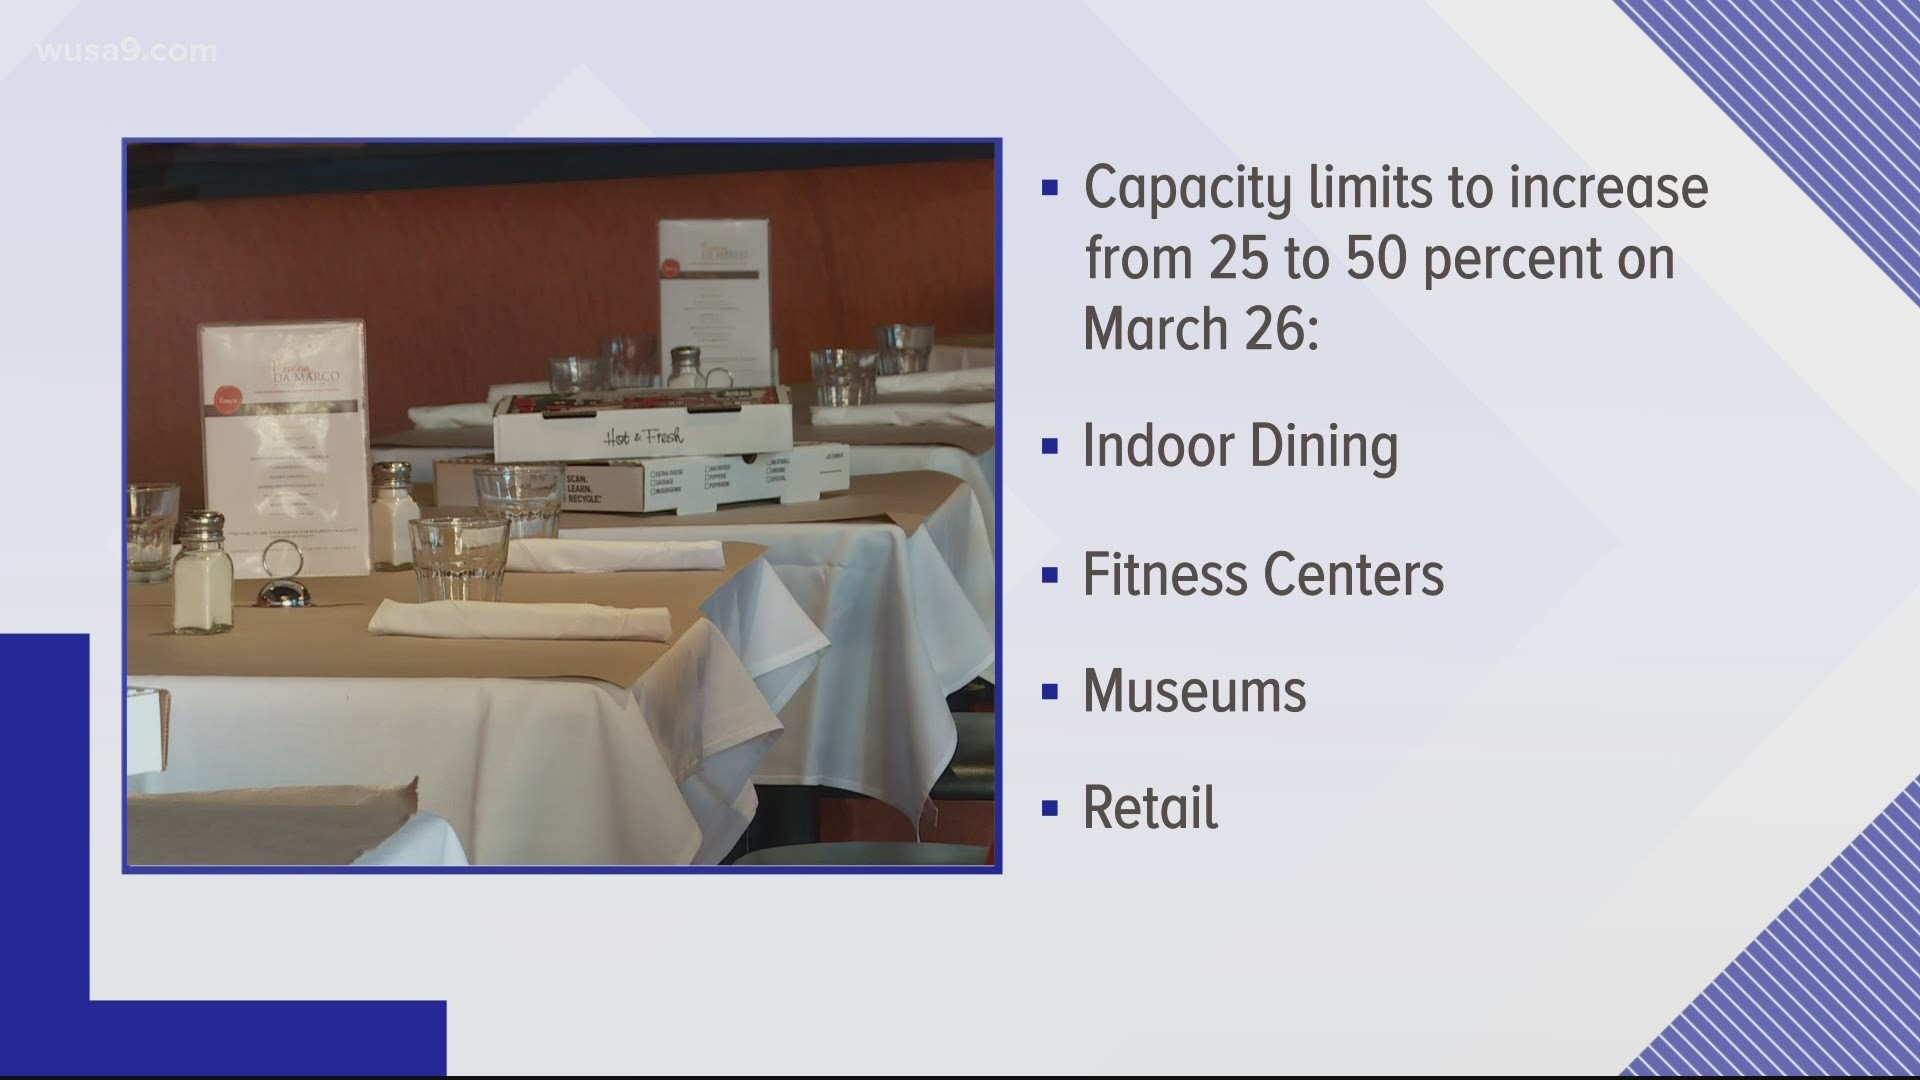 Montgomery County S Reopening Plan Upsets Some Businesses Wusa9 Com